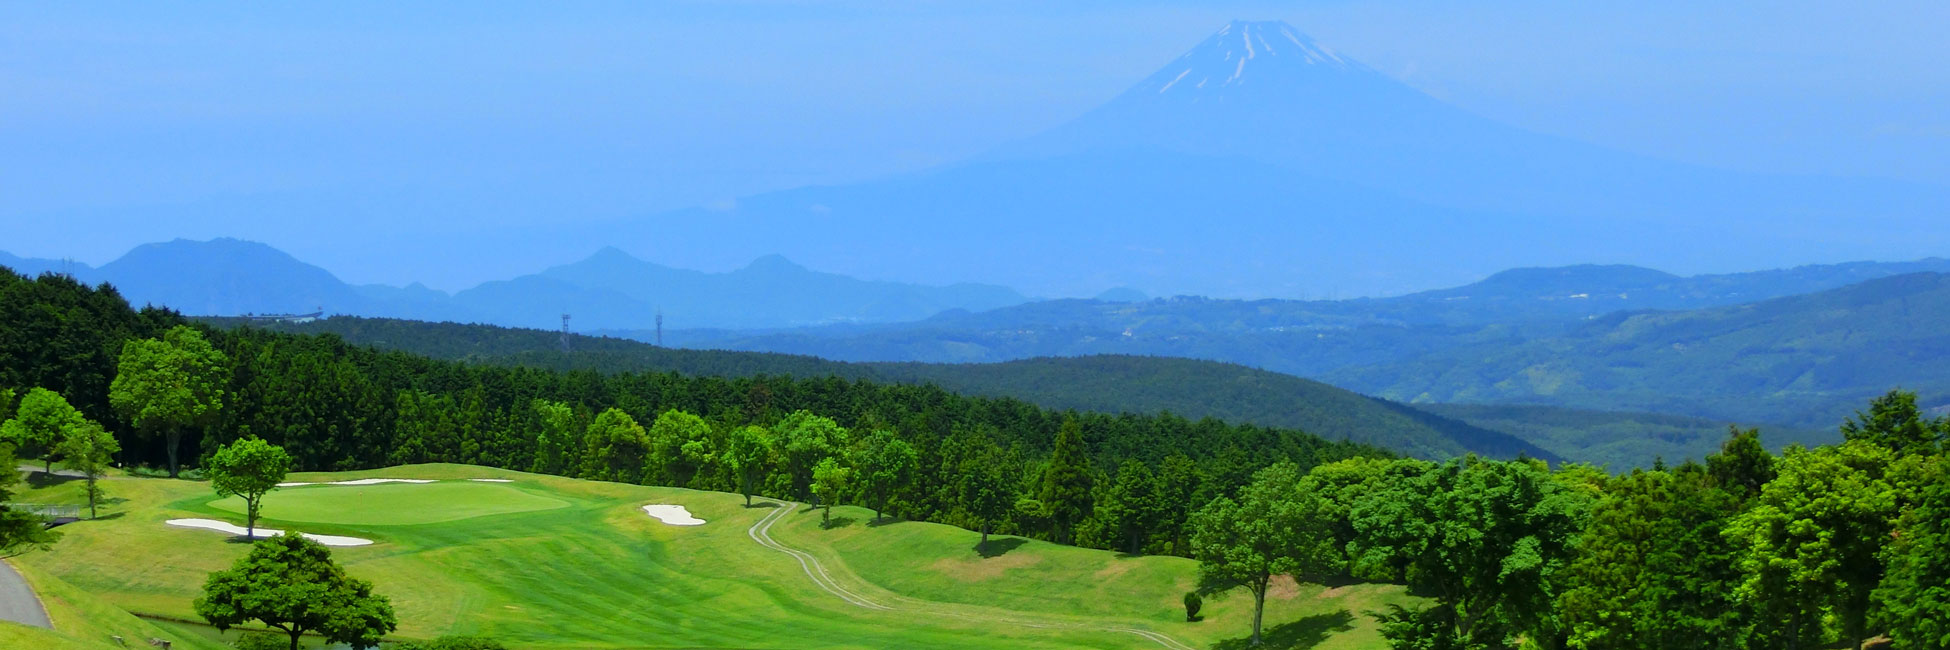 Golf courses in Japan